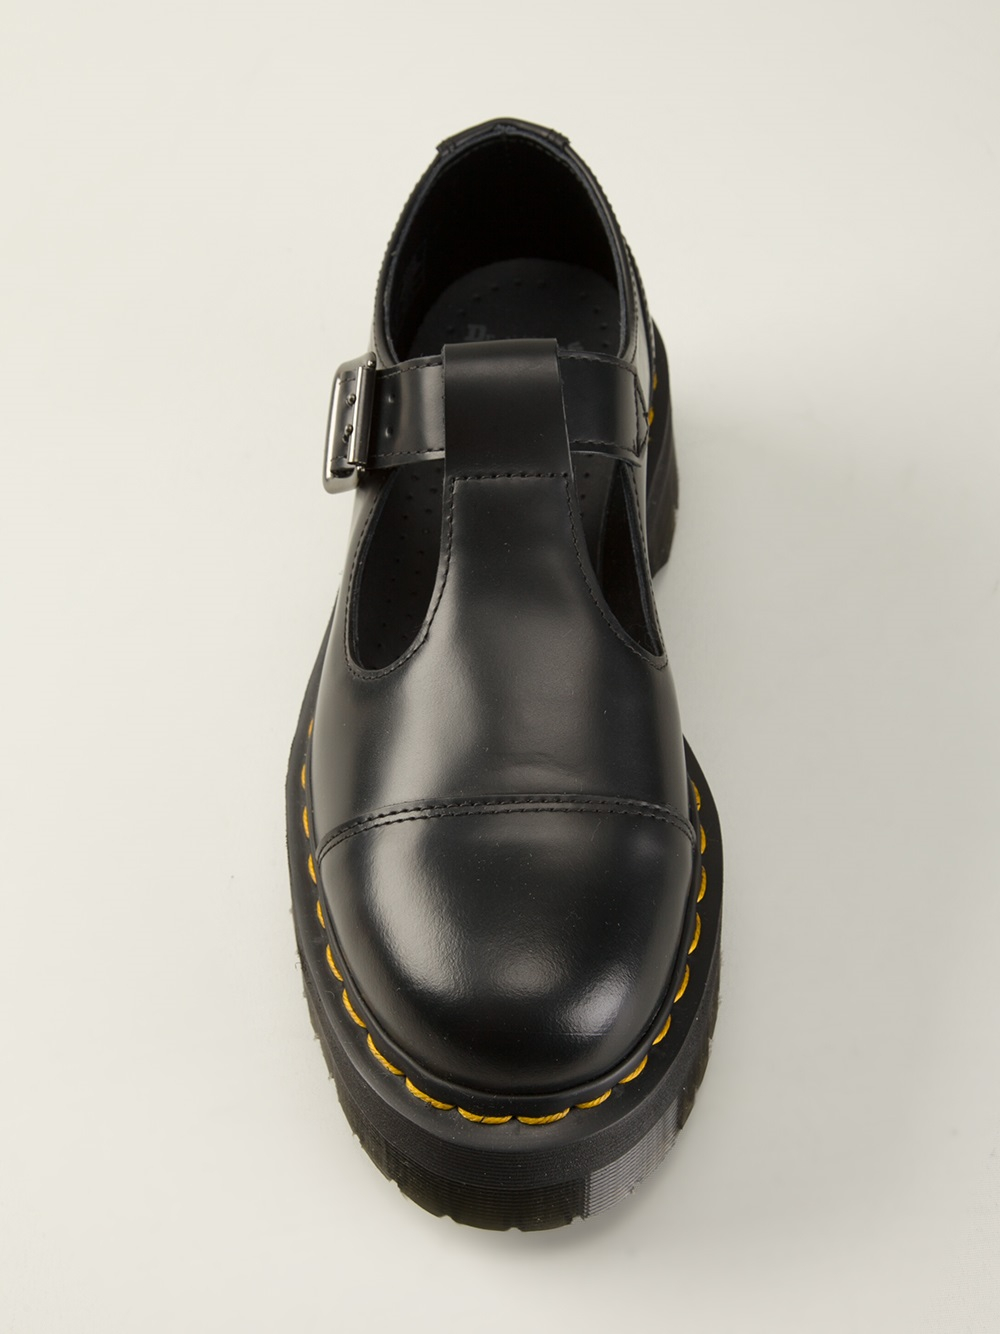 Dr Martens Bethan T Bar Shoes In Black